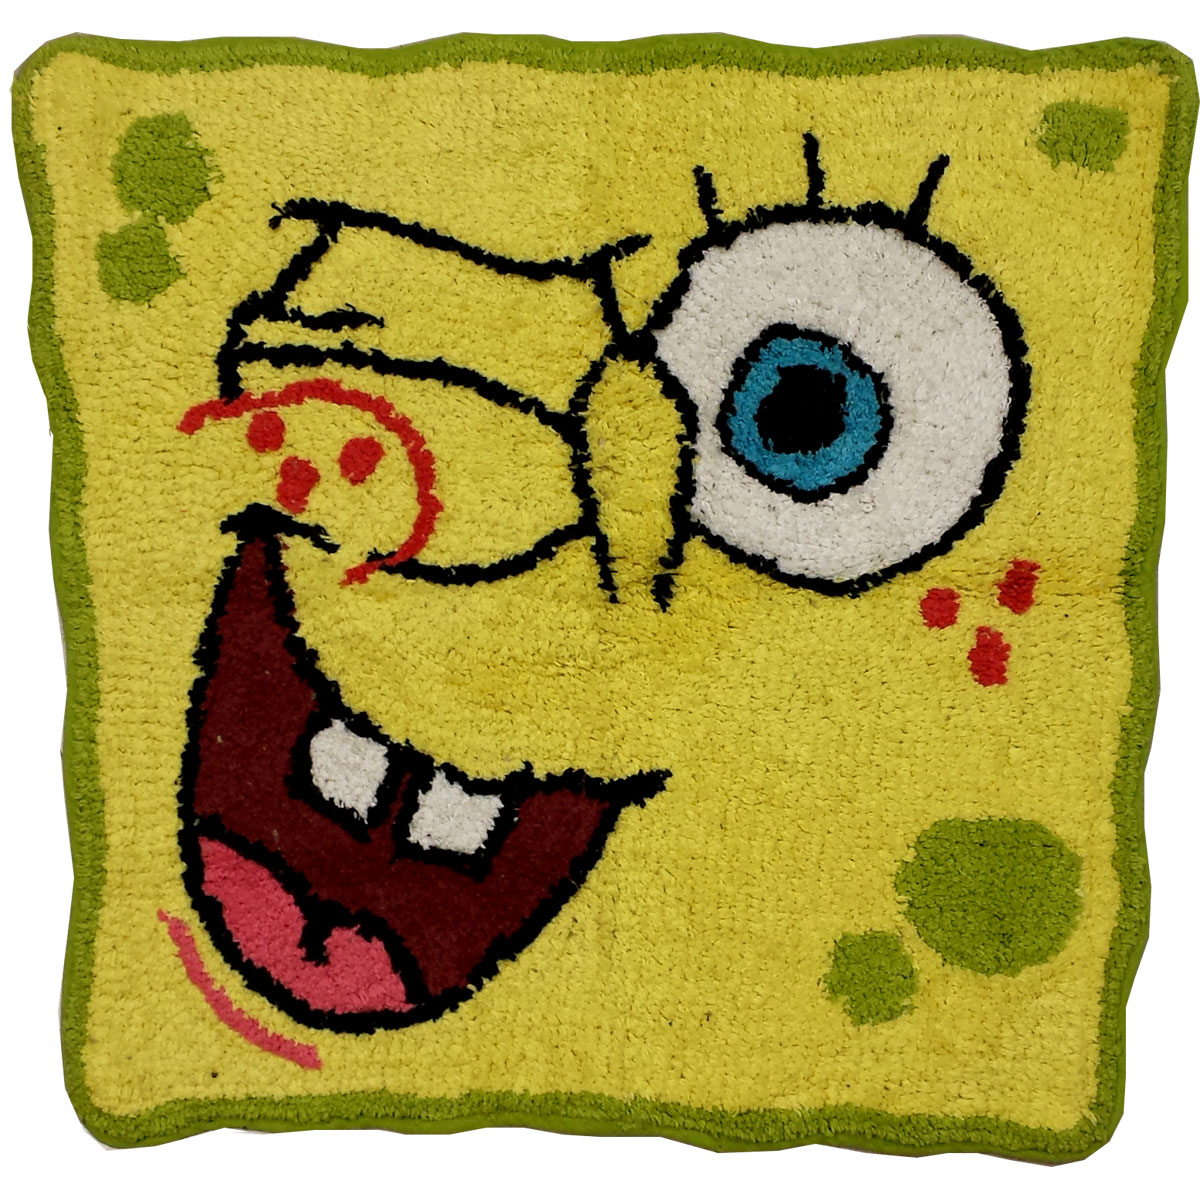 Viacom International Inc Spongebob Bathroom Rug Bubblin Around Bath Accessories at Sears.com